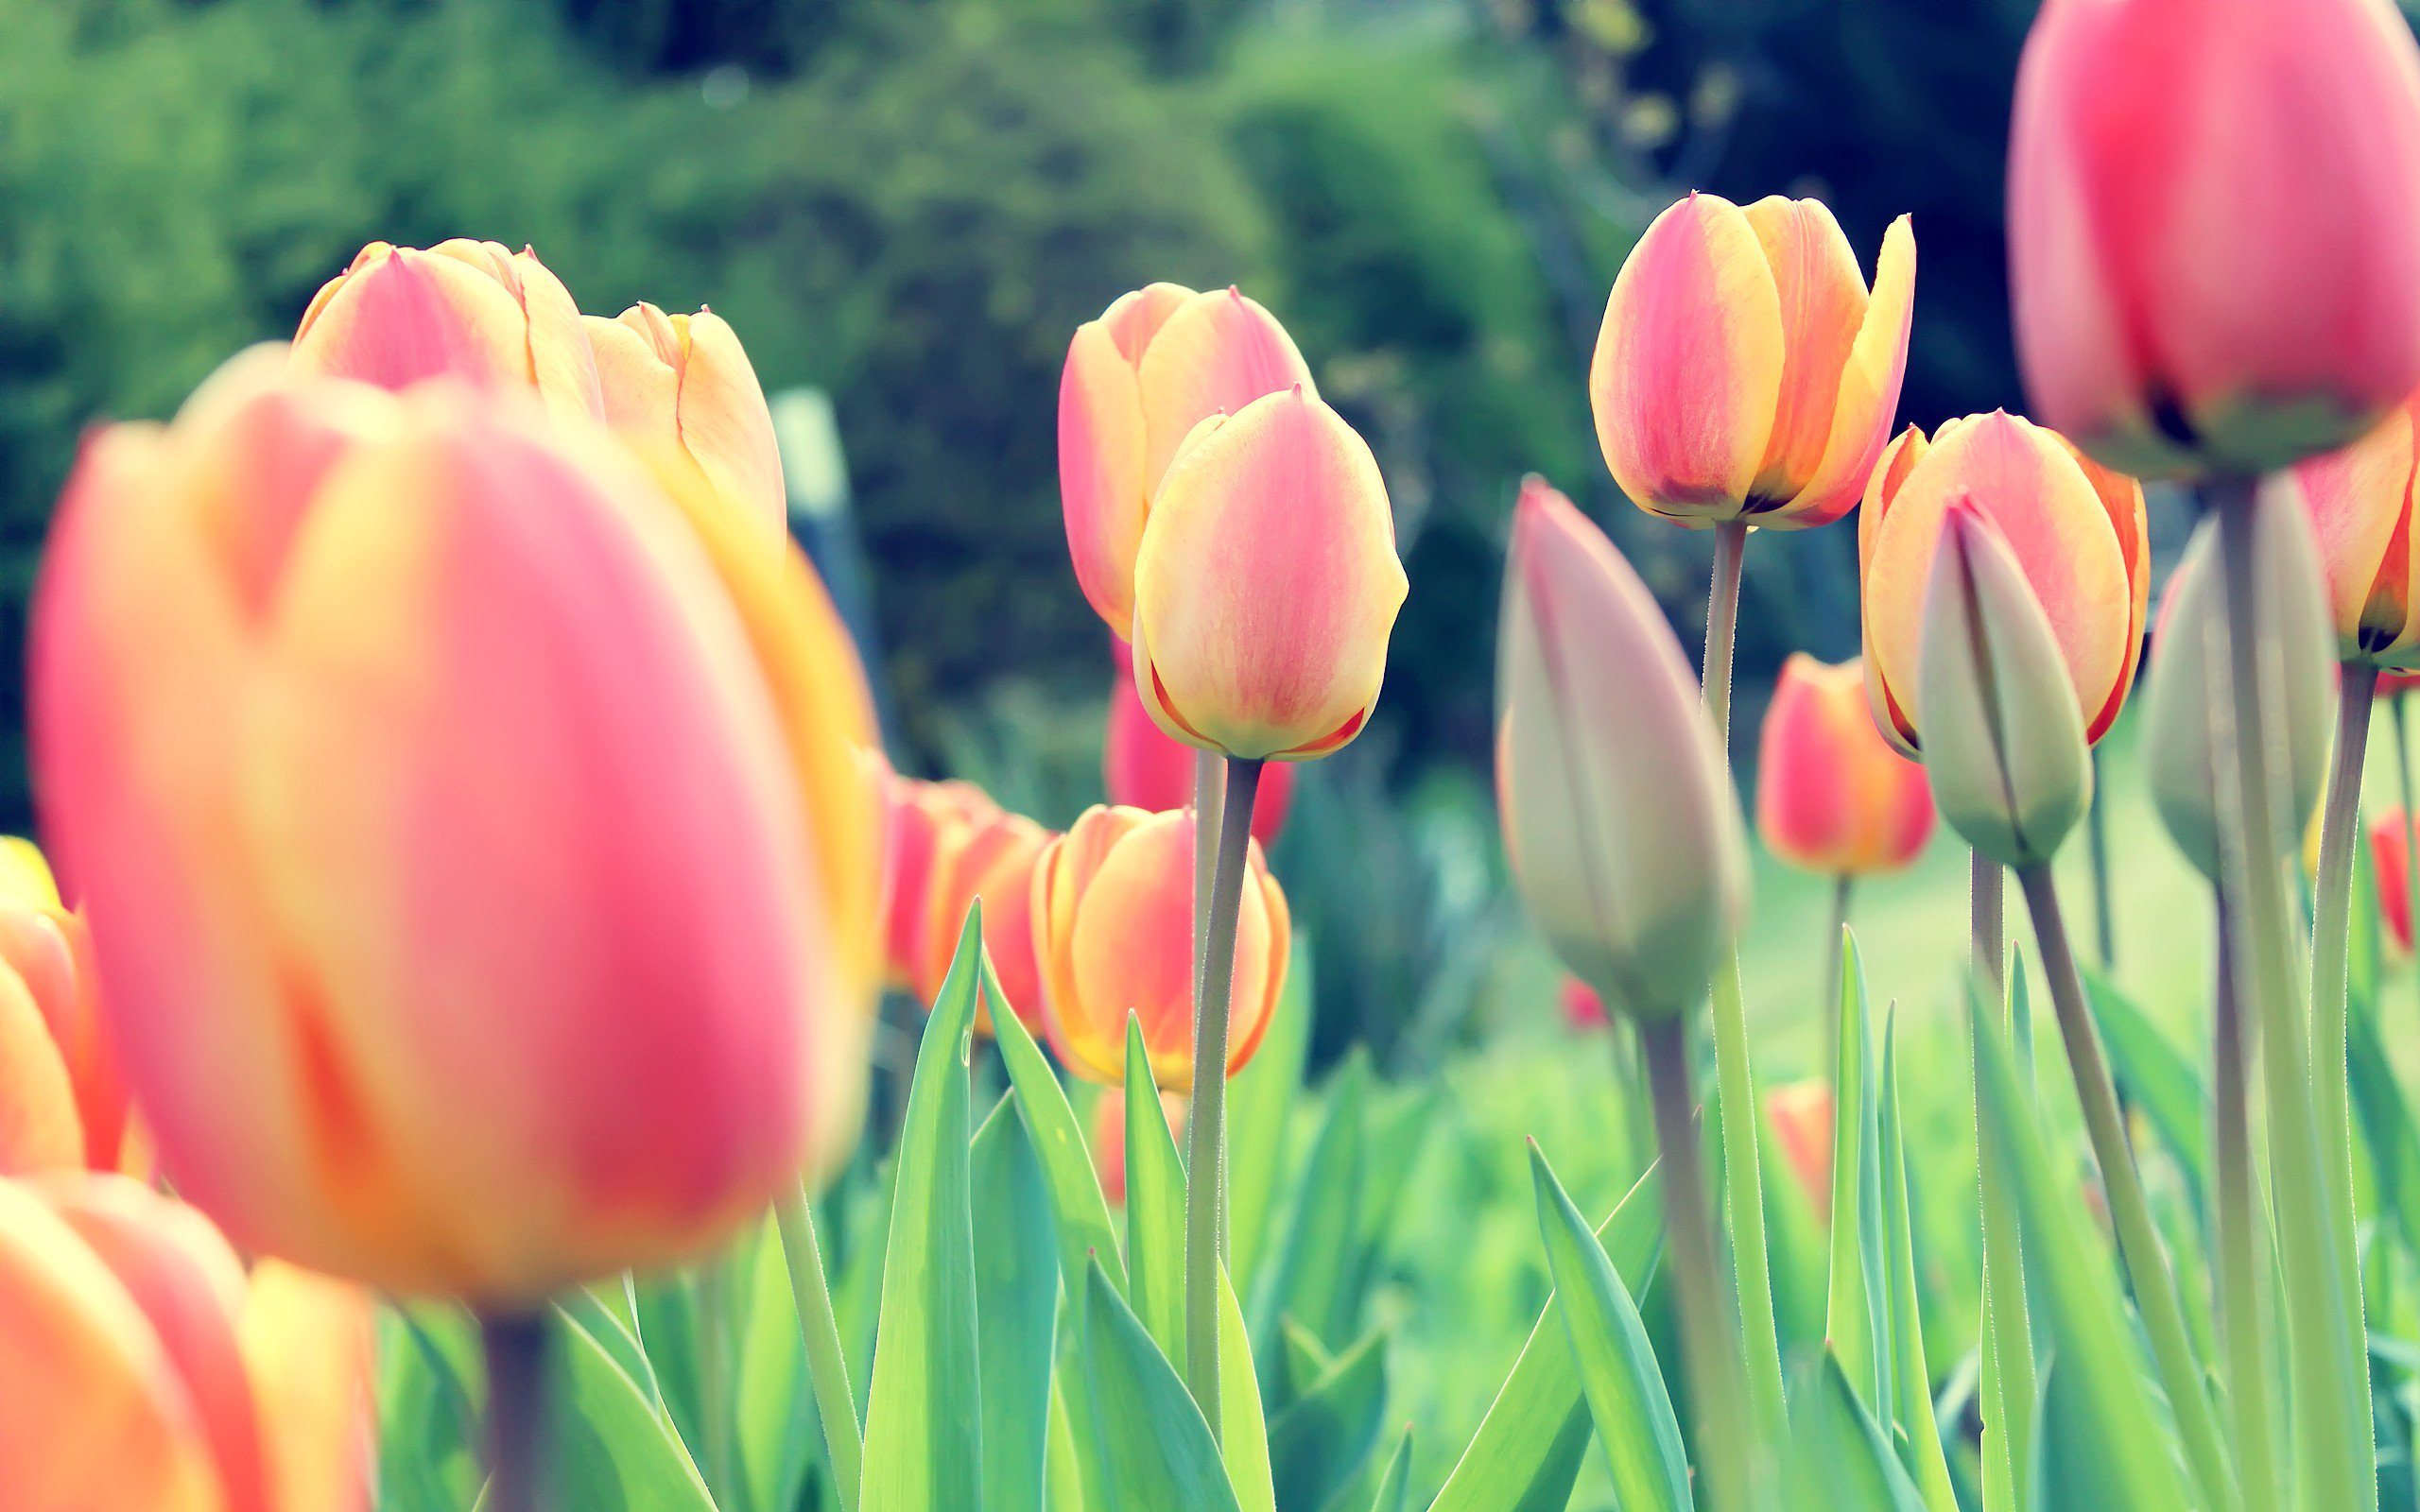 1920x1080 Easter Tulips Laptop Full Hd 1080p Hd 4k